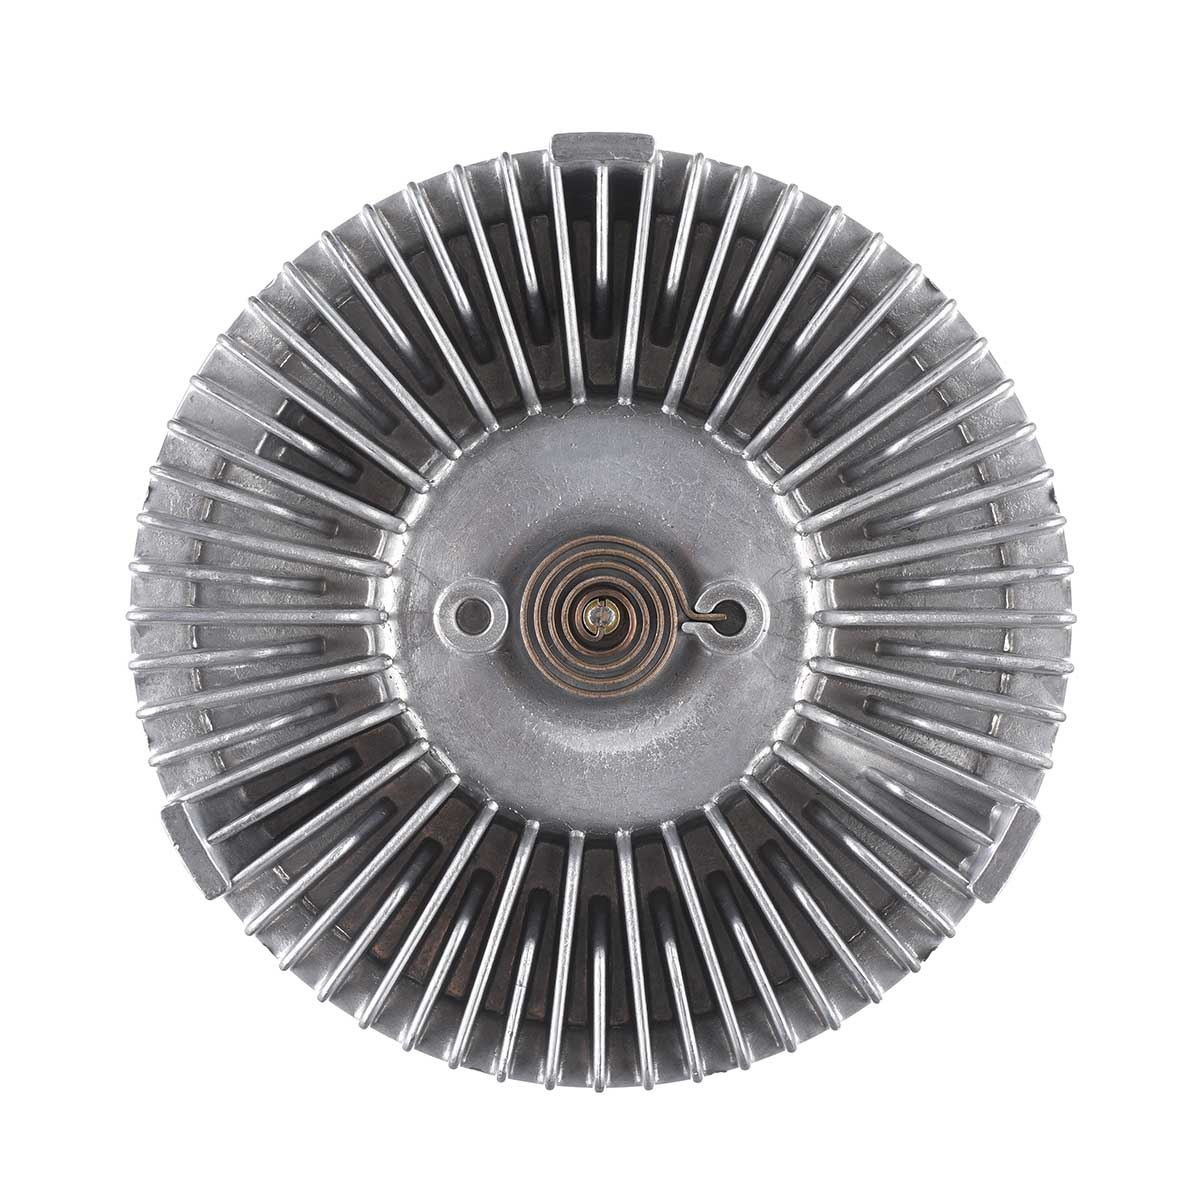 cooling fan clutch for ford explorer sport trac mercury mountaineer 2001 2005 lincoln aviator 4 0l 4 6l ccw 4l2z8a616aa 2776 in fans kits from automobiles  [ 1200 x 1200 Pixel ]